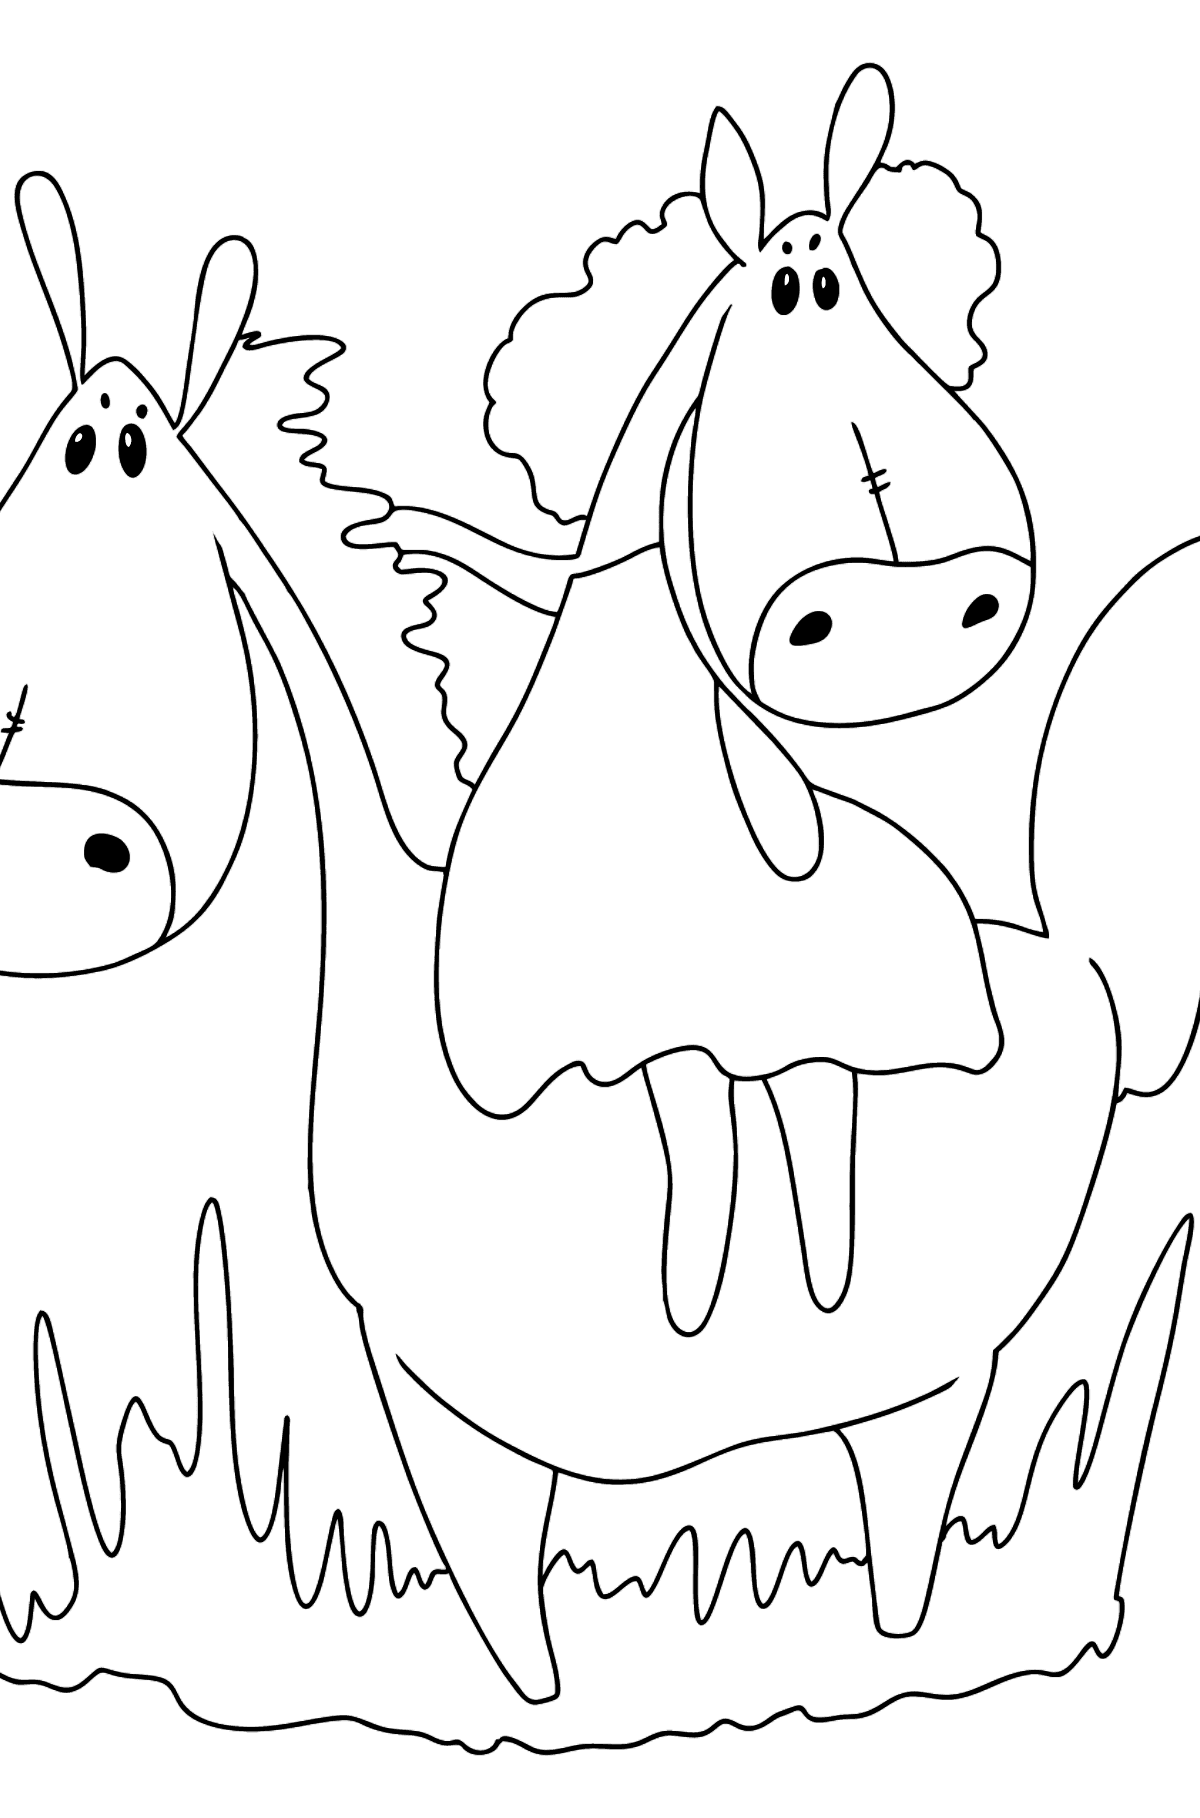 Simple coloring page a horse for a walk - Coloring Pages for Kids